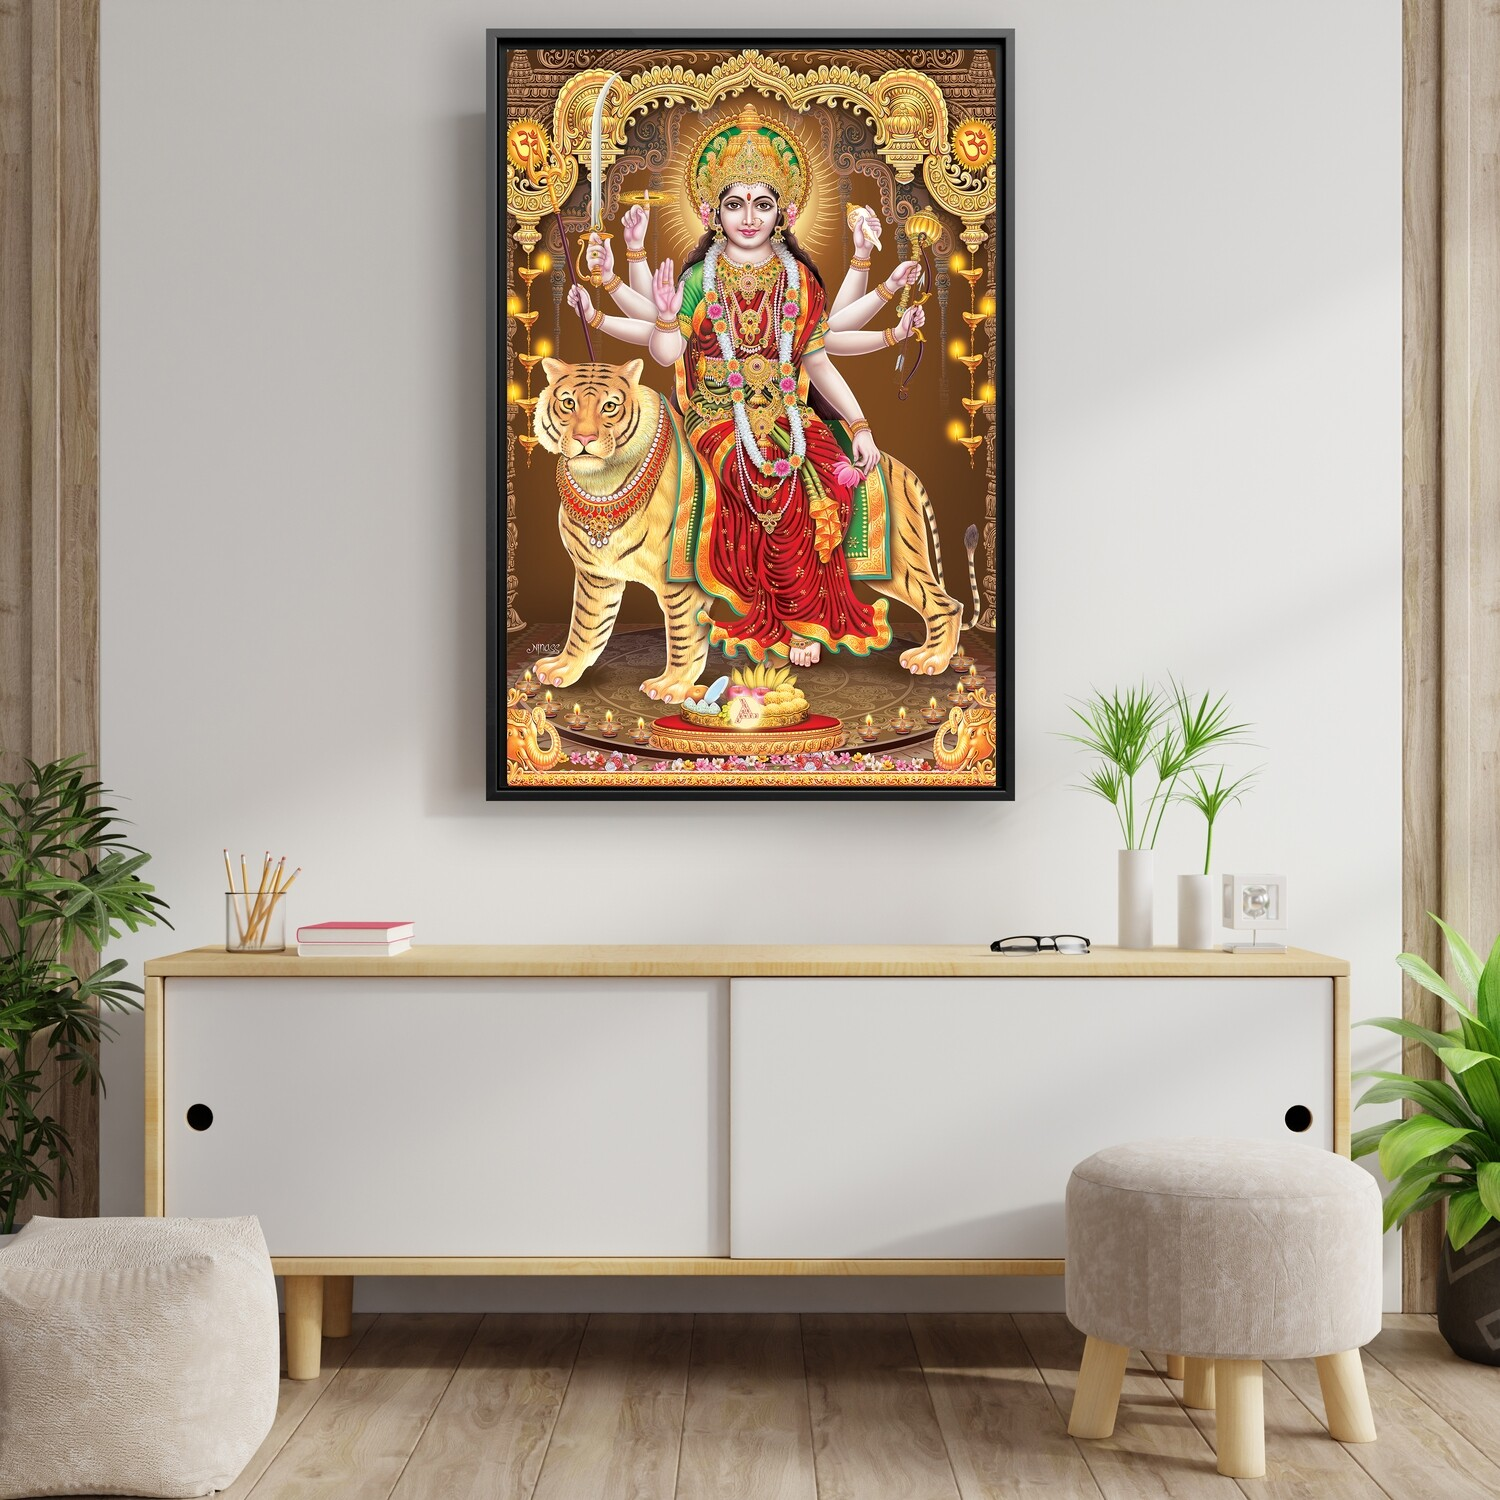 Durga Devi  Painting -Framed Hindu God Wallart -Kali Devi Picture Printed on  Acrylic Glass -Framed and Ready To Hang